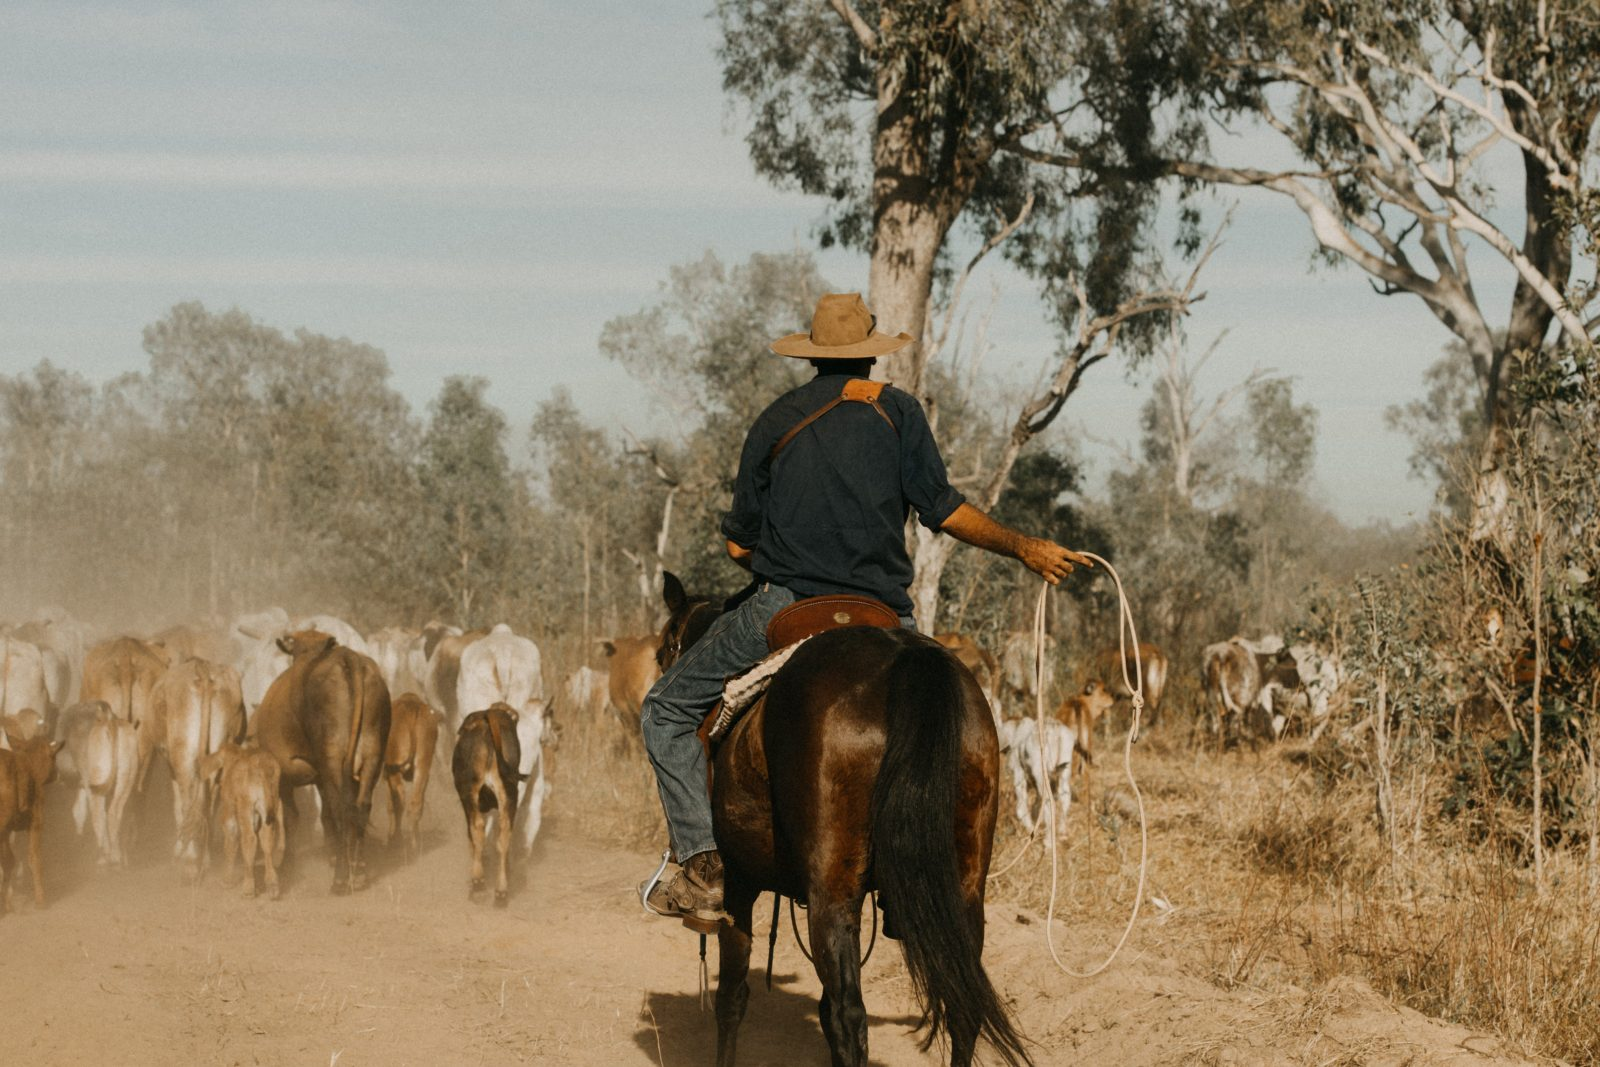 Immerse yourself in a working cattle station and see what goes on